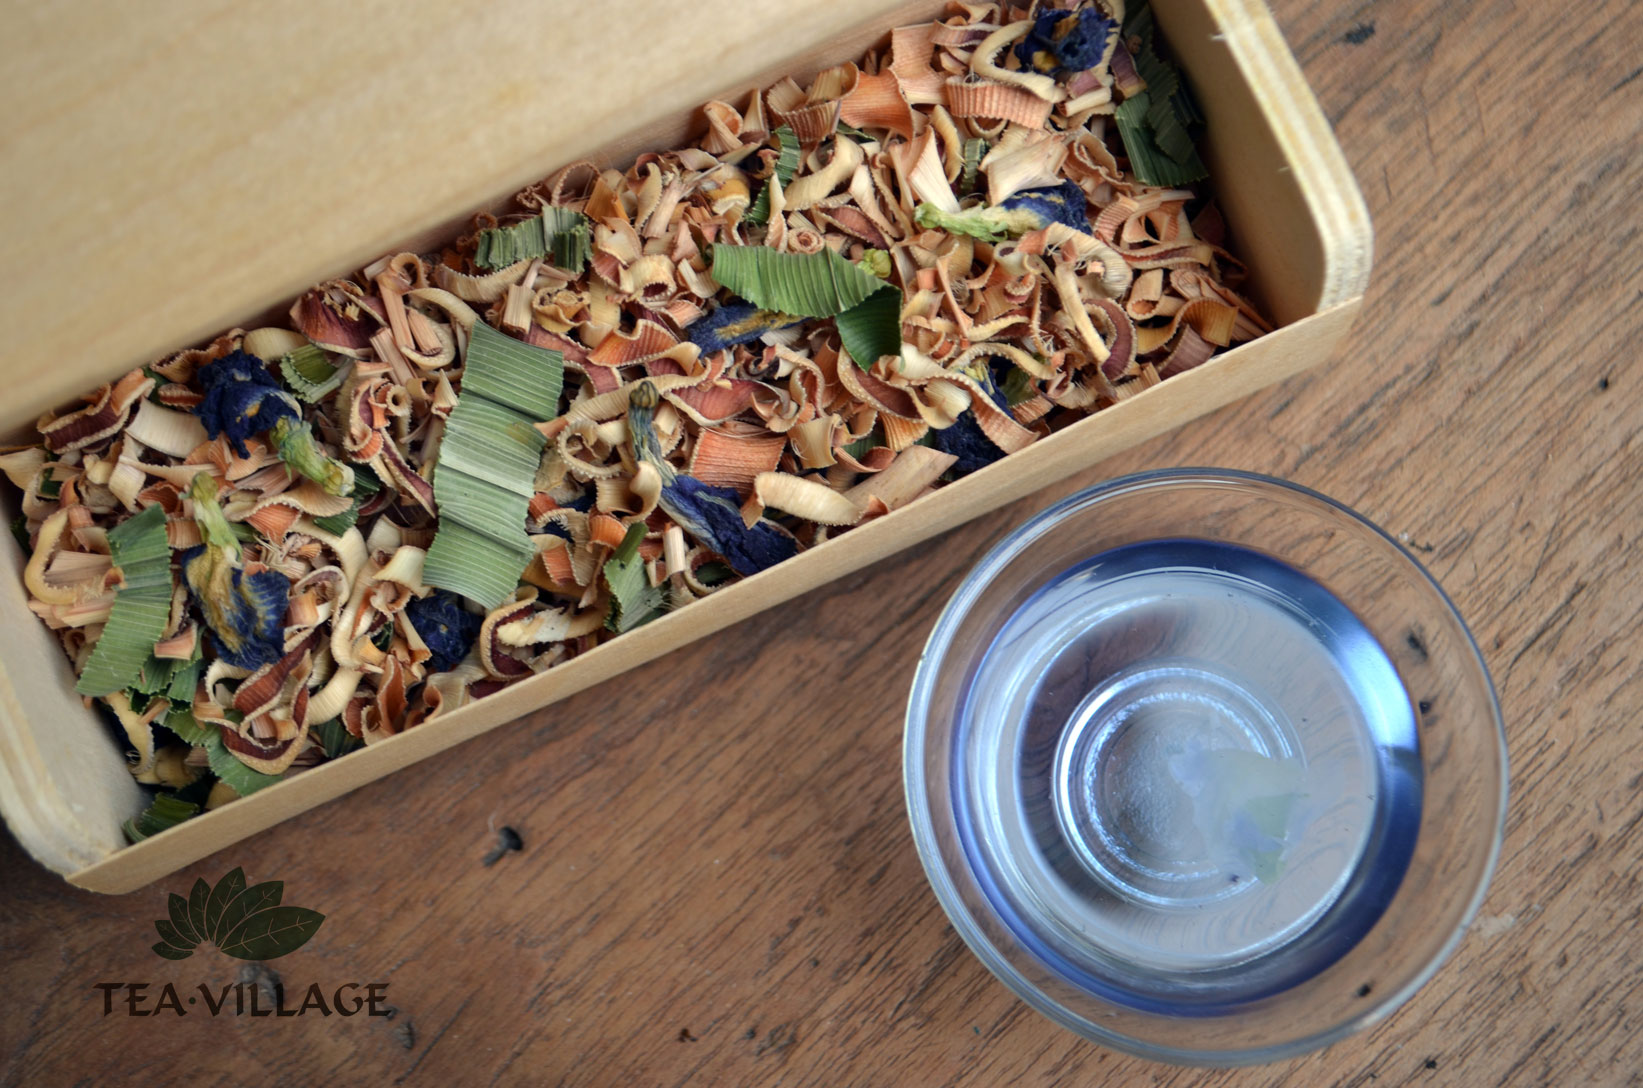 The Summer Breeze Herbal Blend of Tea Village